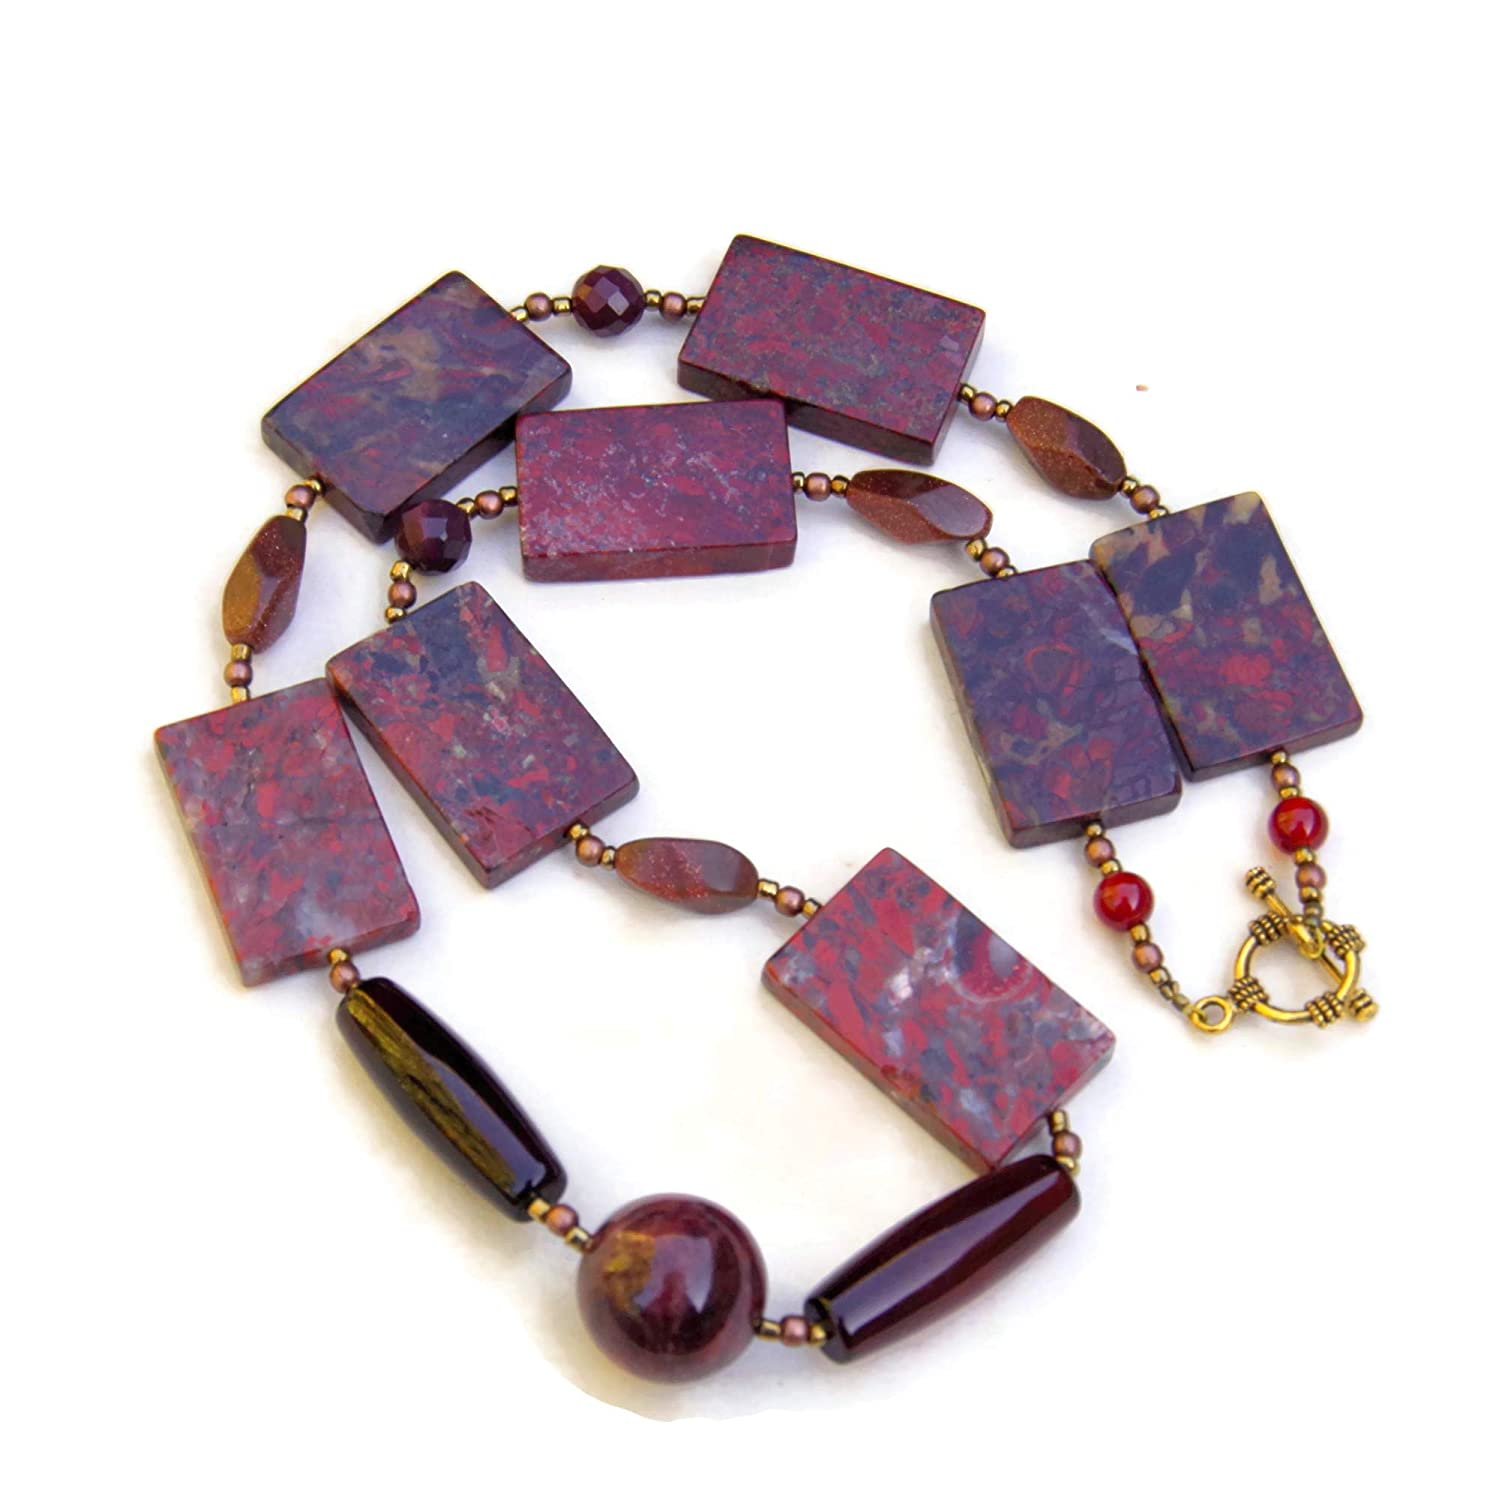 Terracotta Red Poppy Jasper Max 78% OFF Slab Long Necklace 22 Super Special SALE held Geometr inches